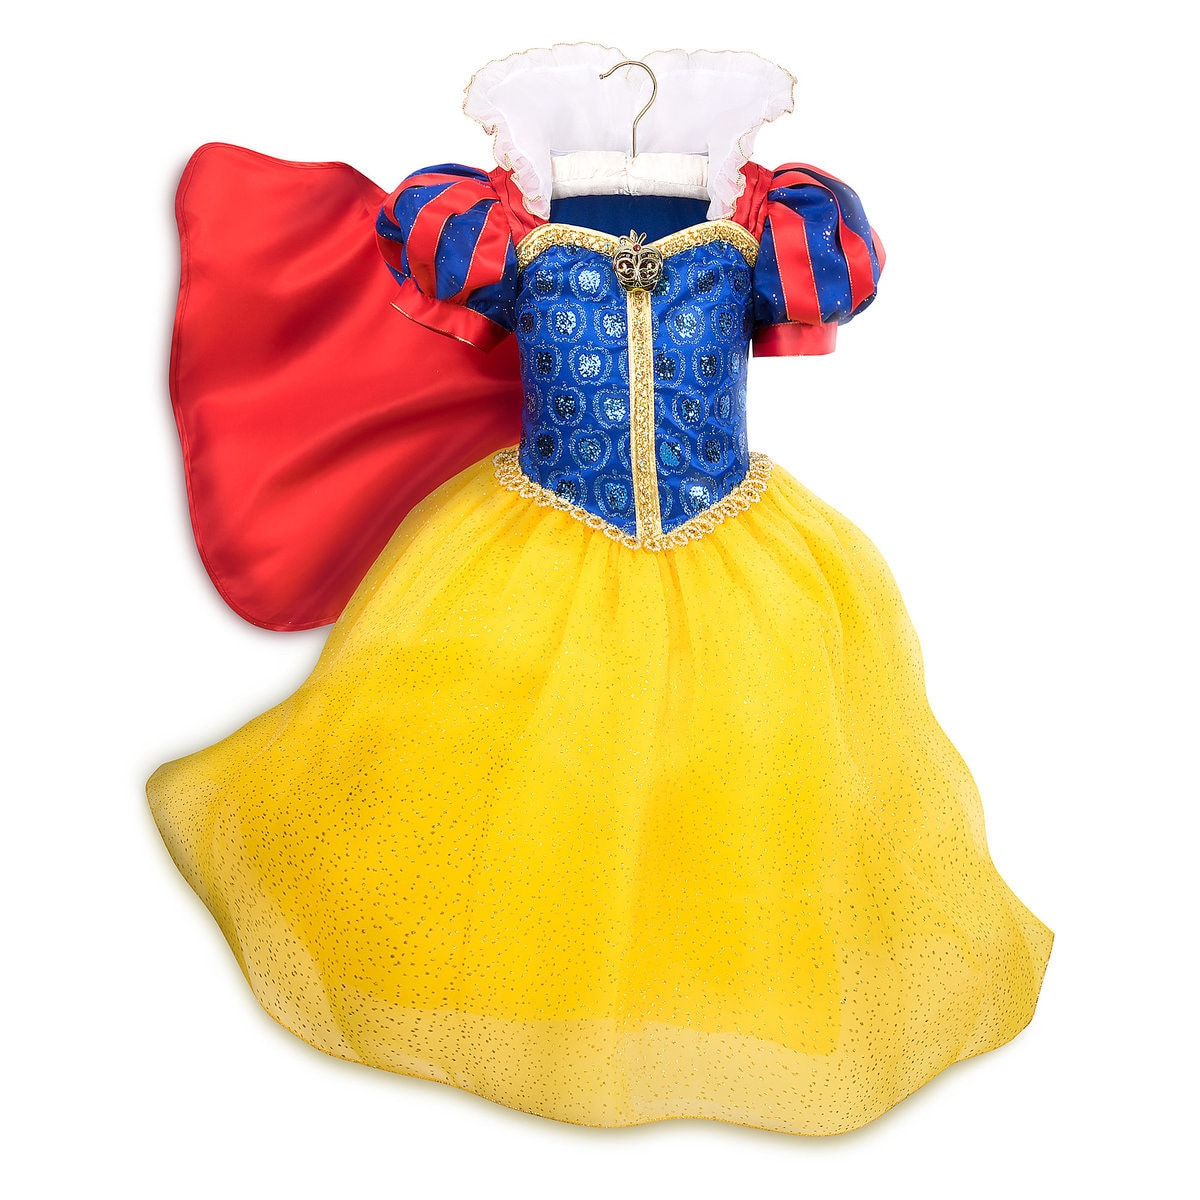 352f5f5441a Product Image of Snow White Costume for Kids   1